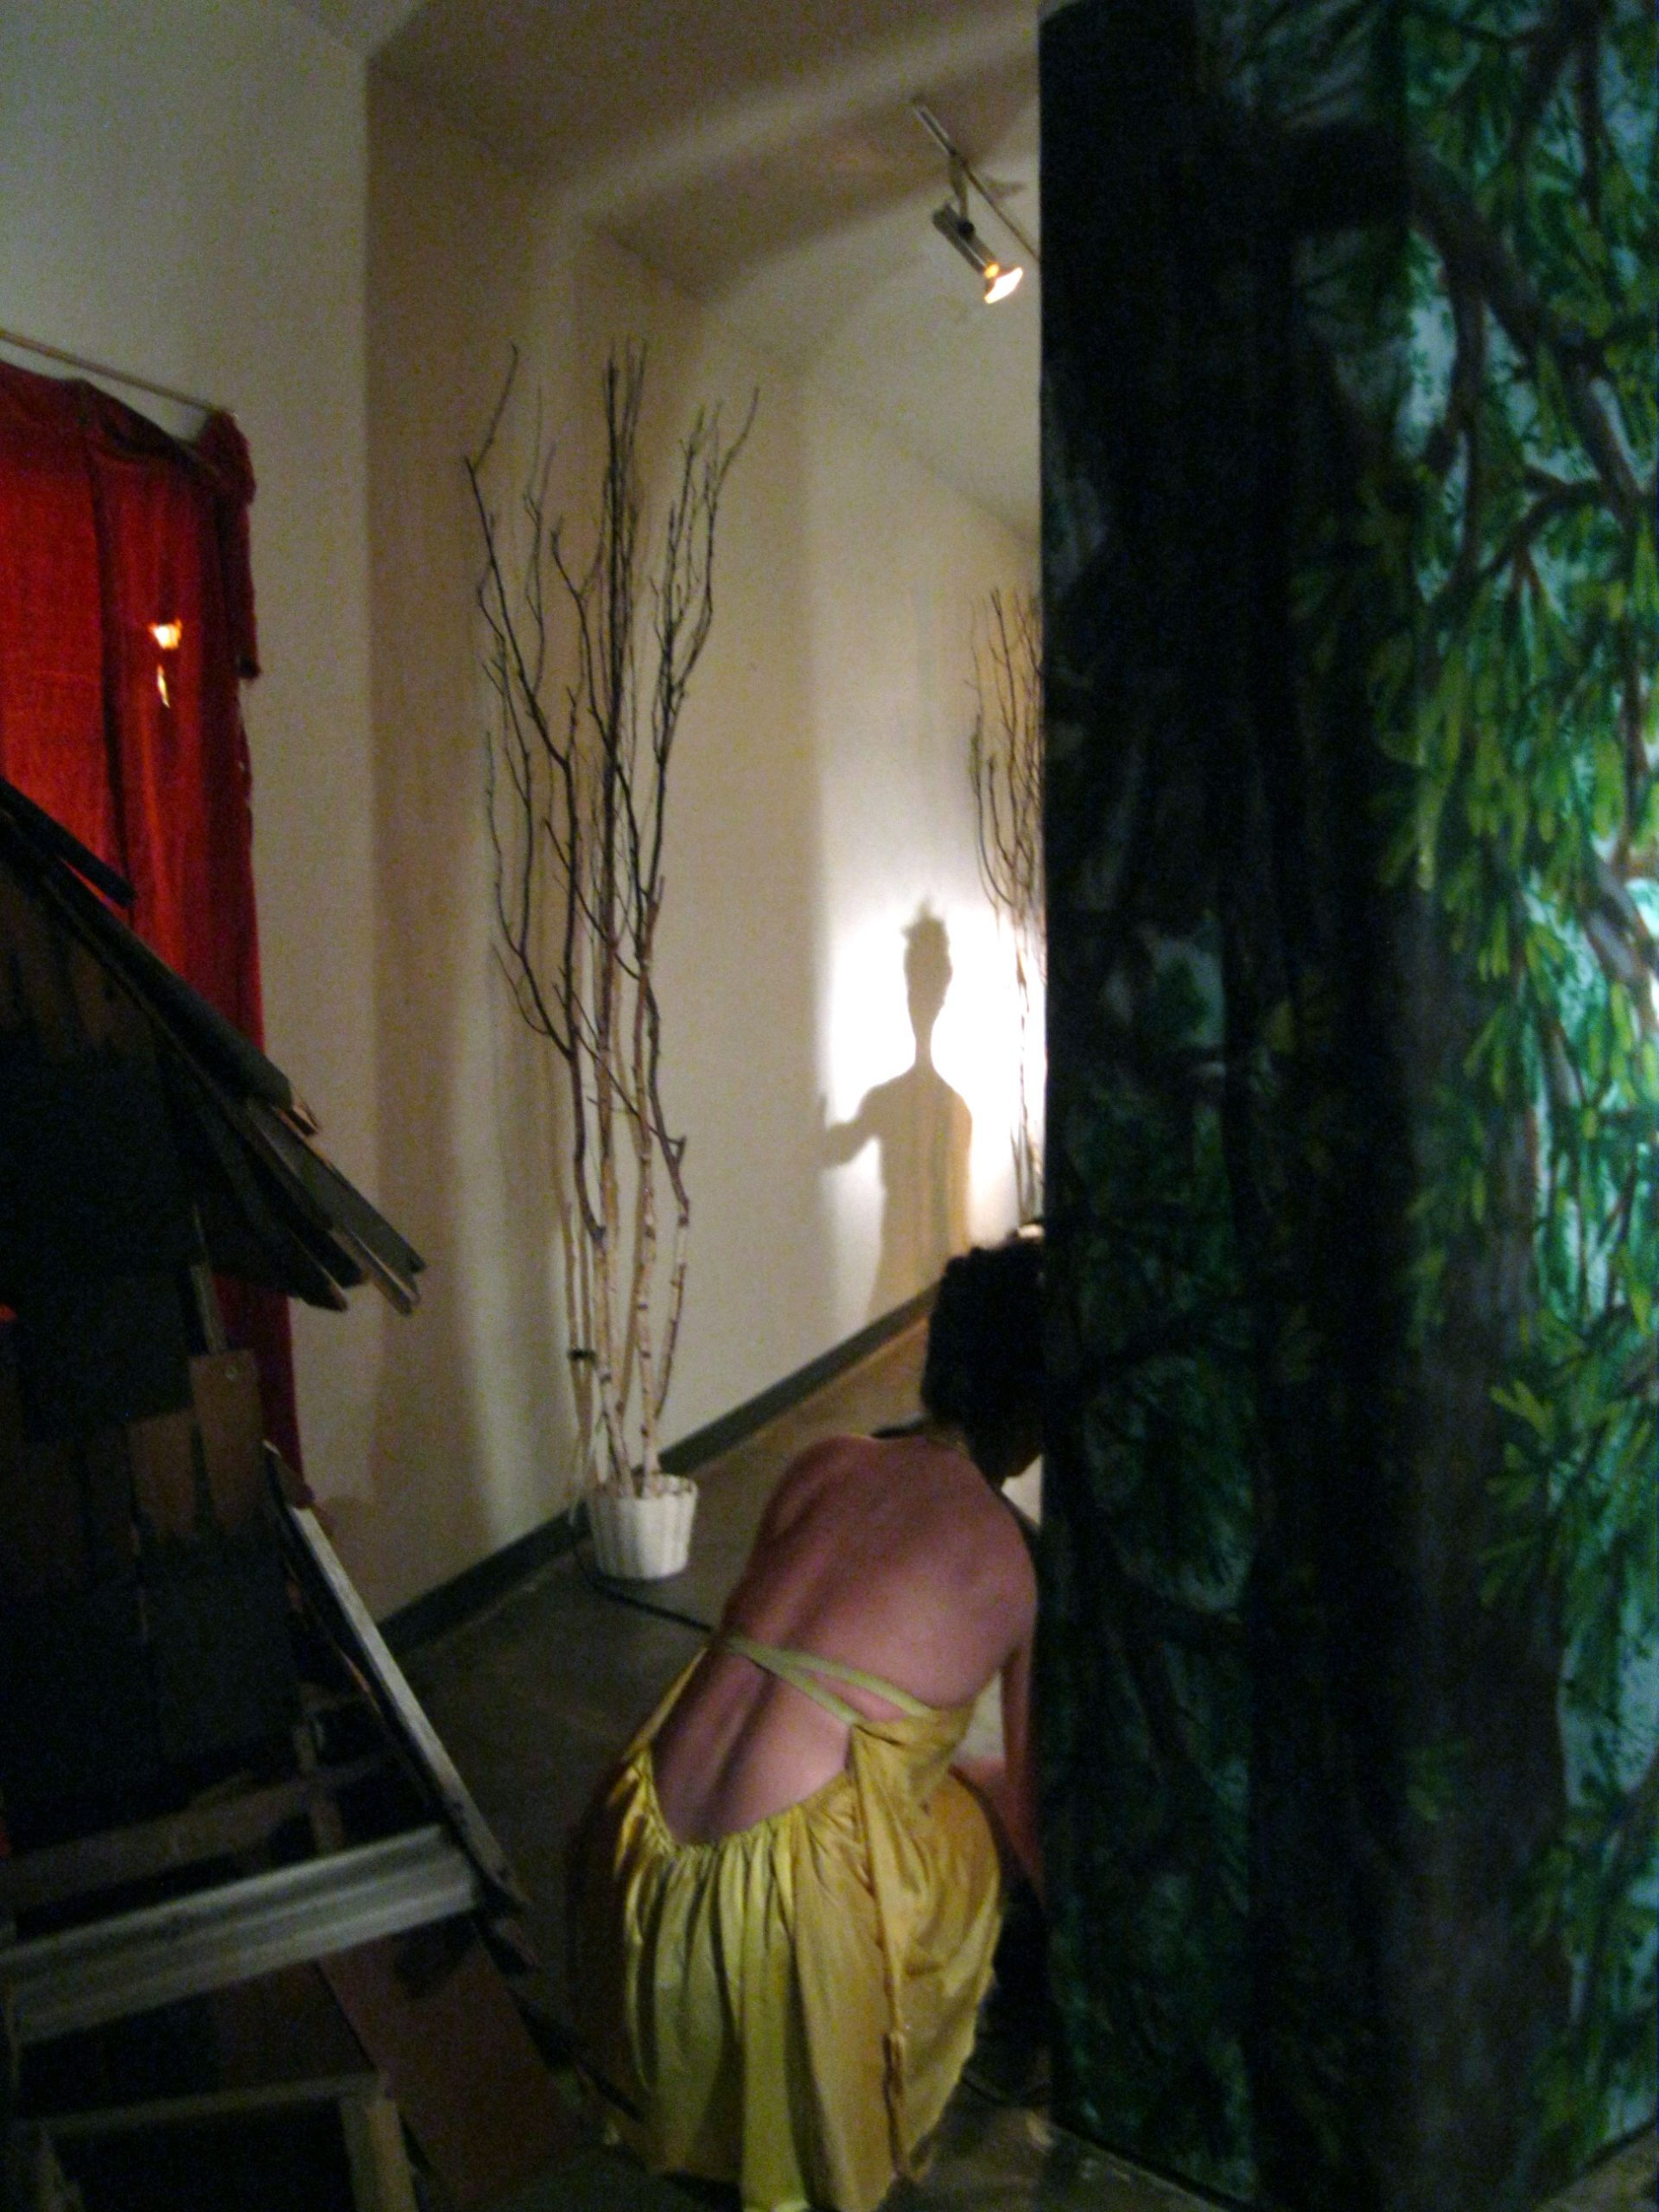 dancer crouching on the floor next to part of installation